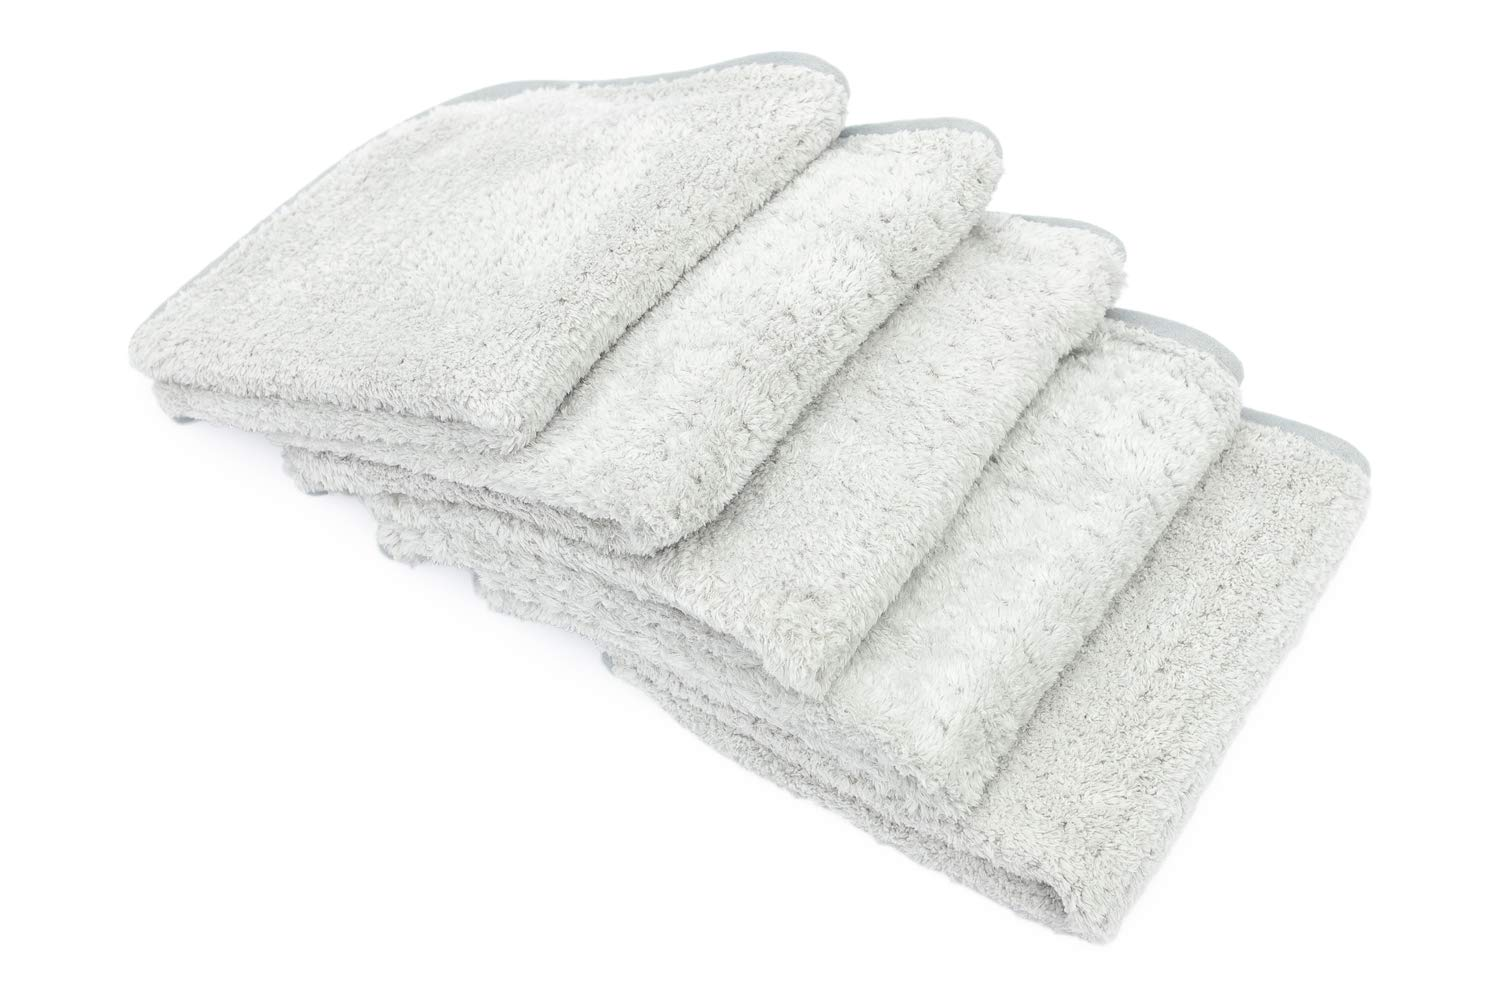 THE RAG COMPANY (5-Pack 16 in. x 16 in. Platinum PLUFFLE Professional Korean 70/30 490gsm Plush Waffle Microfiber Detailing Towels